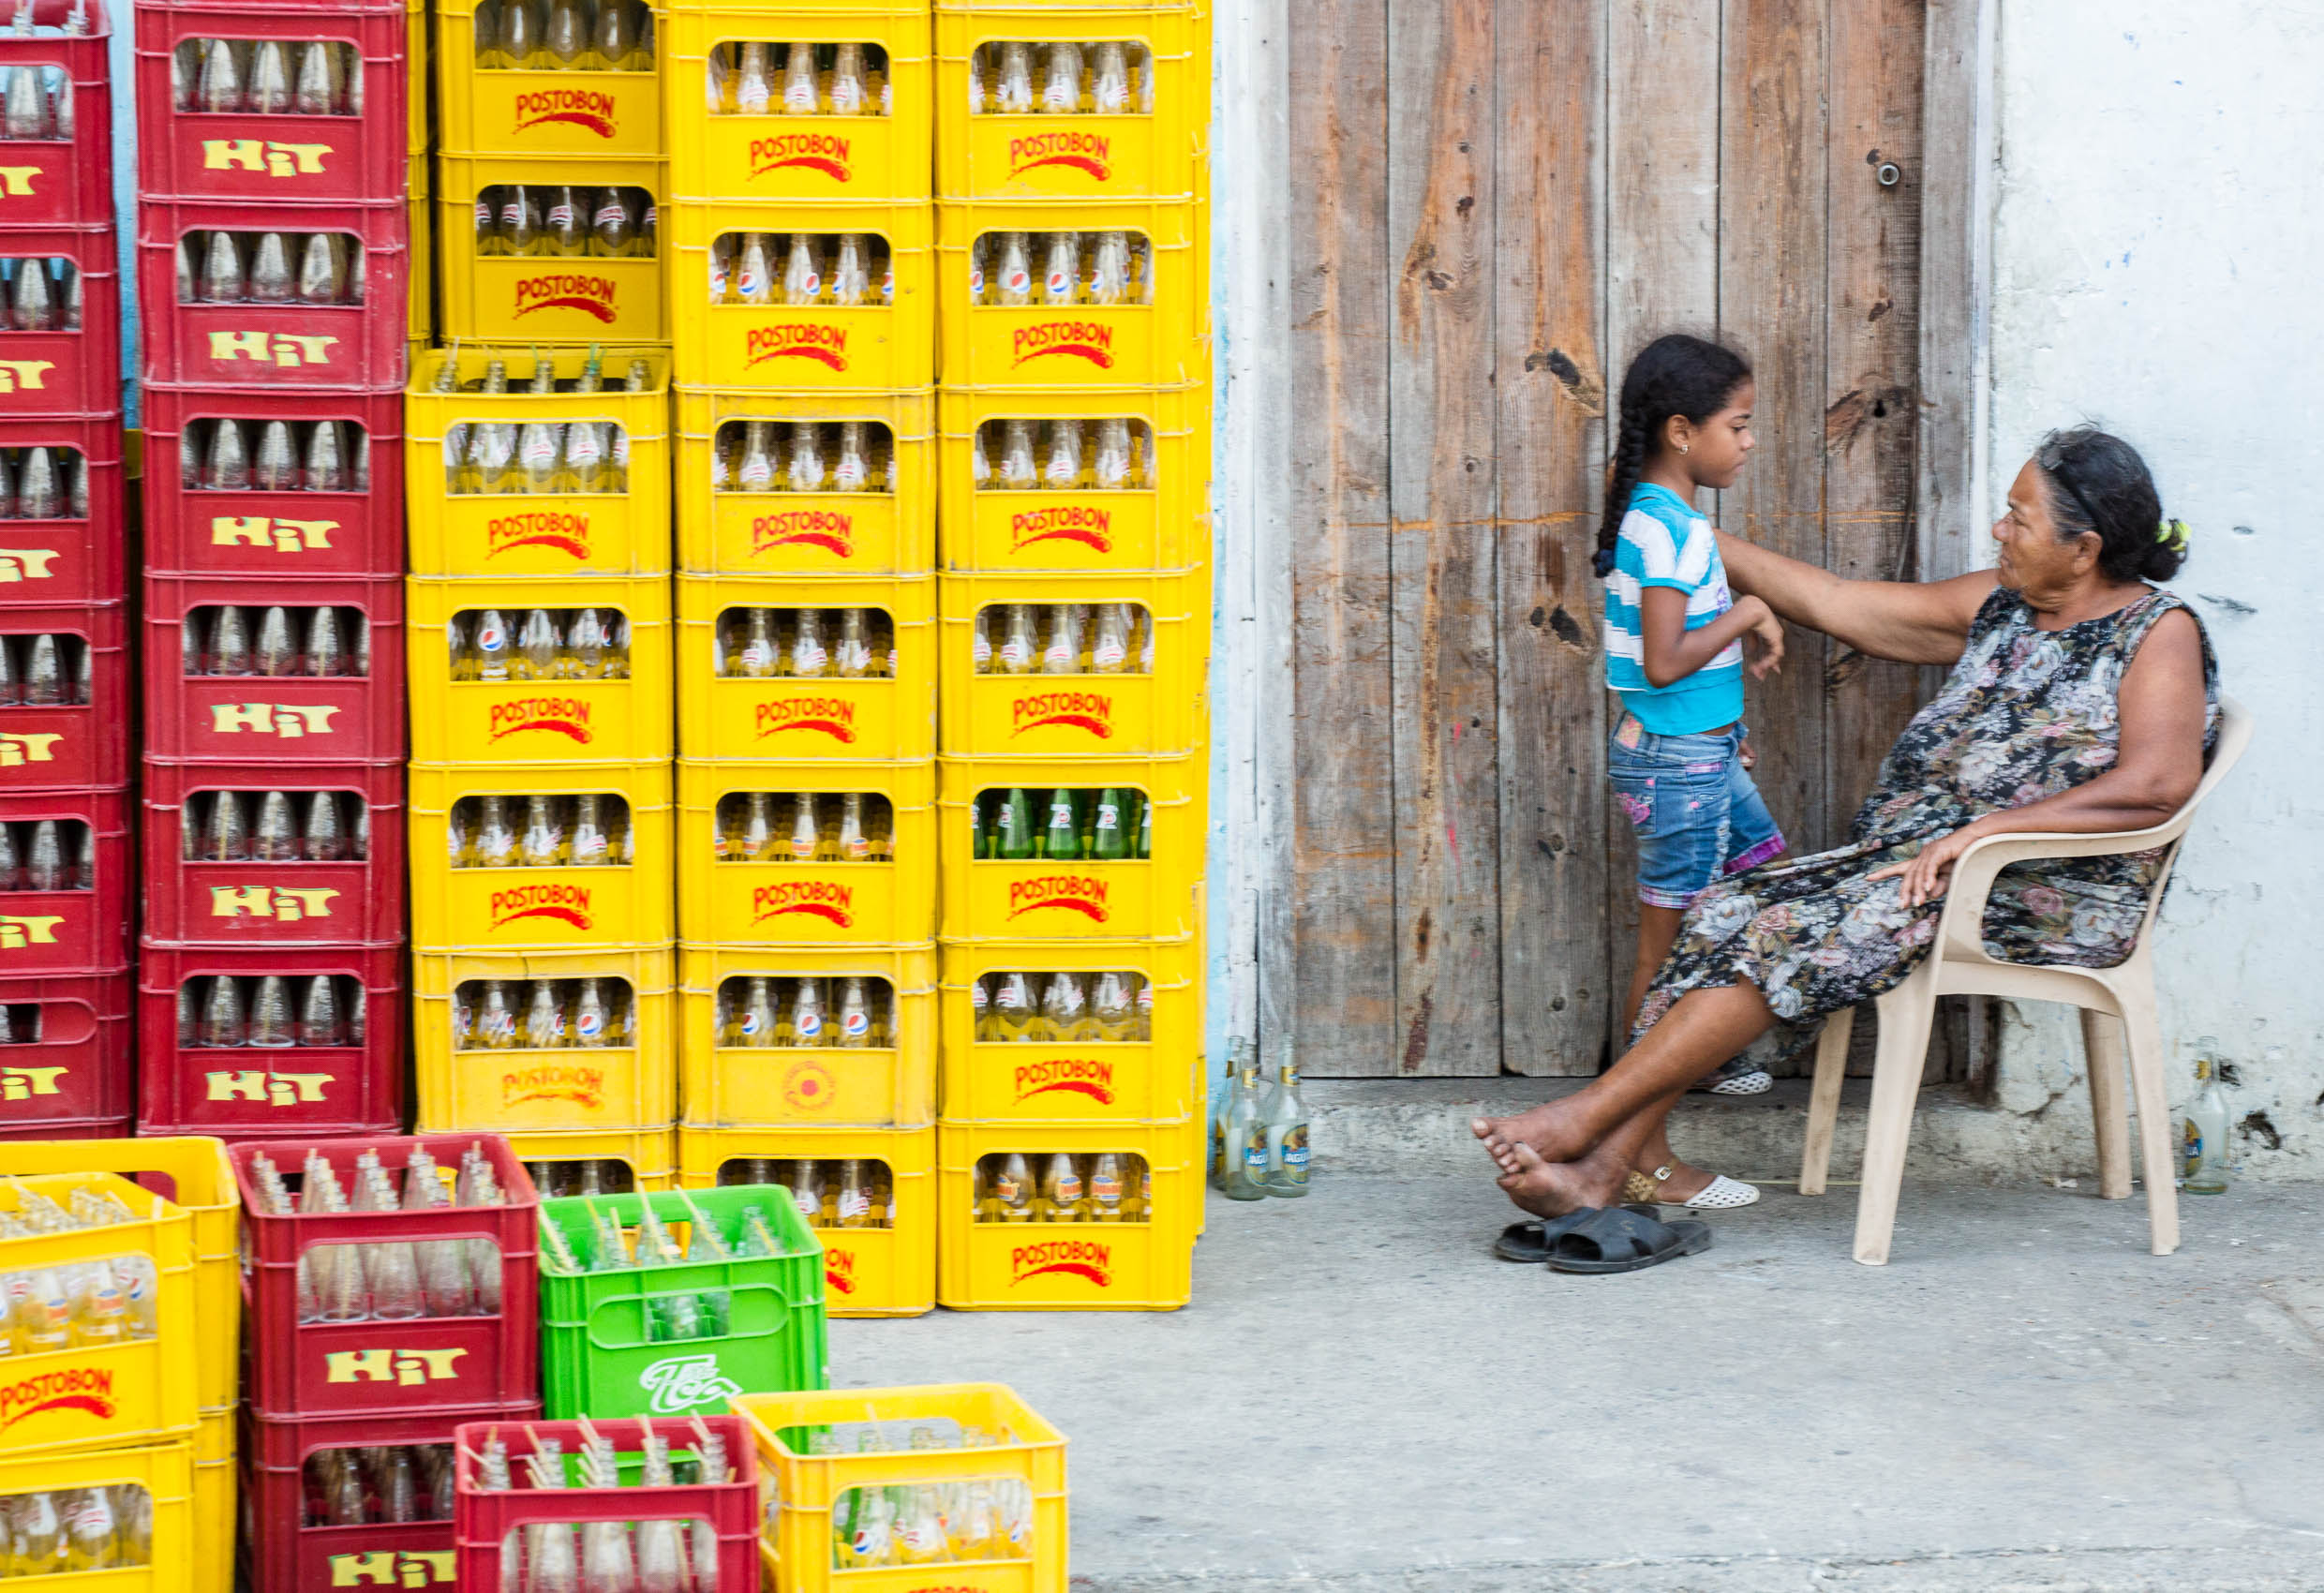 Colombia-Cartagena-Getsemani-Yellow-Crates